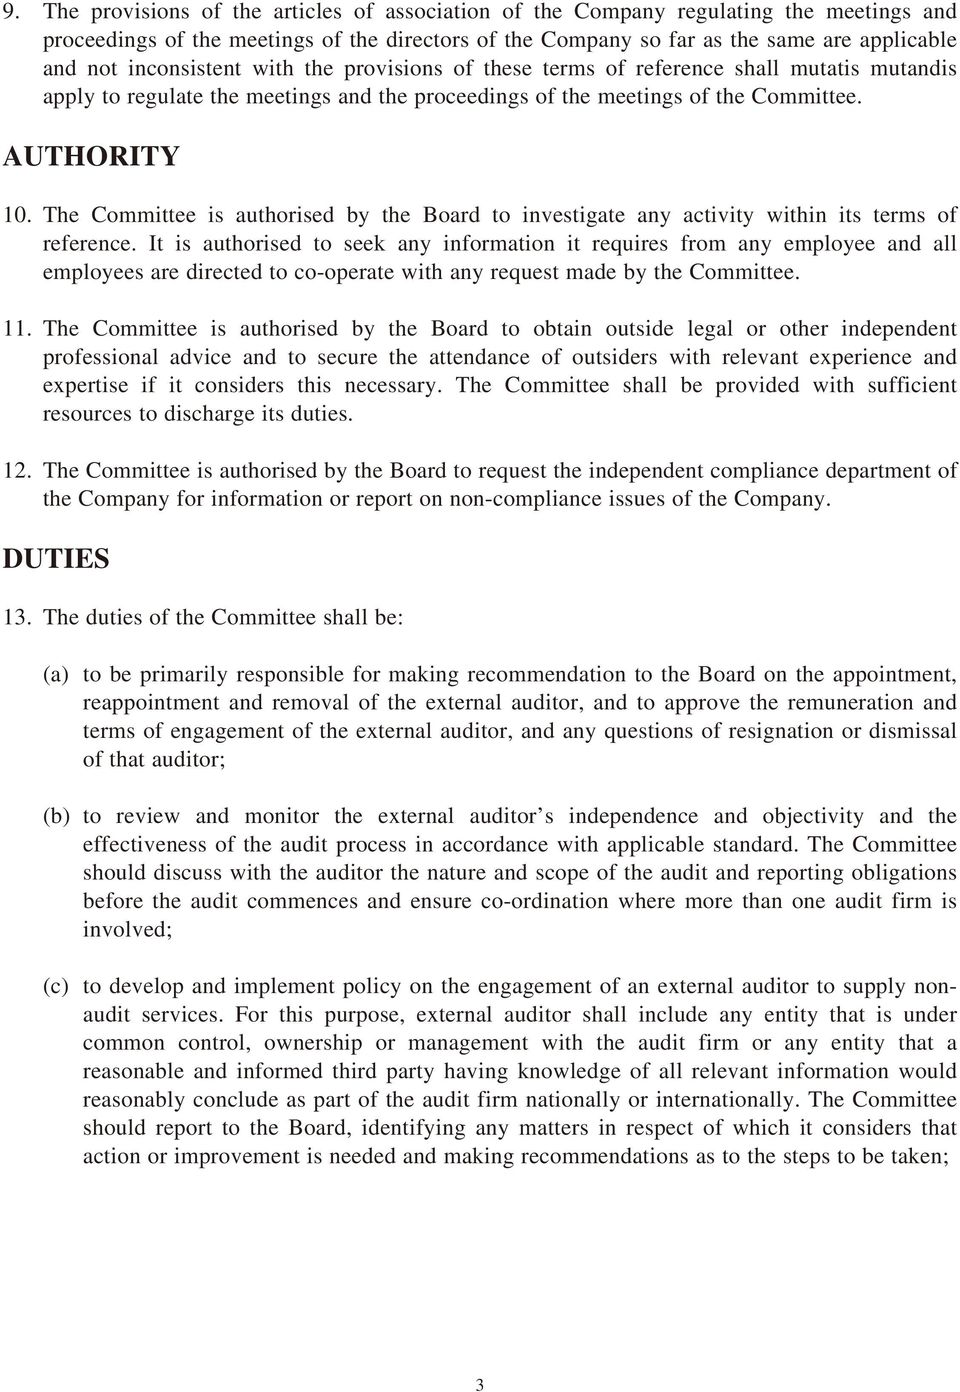 The Committee is authorised by the Board to investigate any activity within its terms of reference.